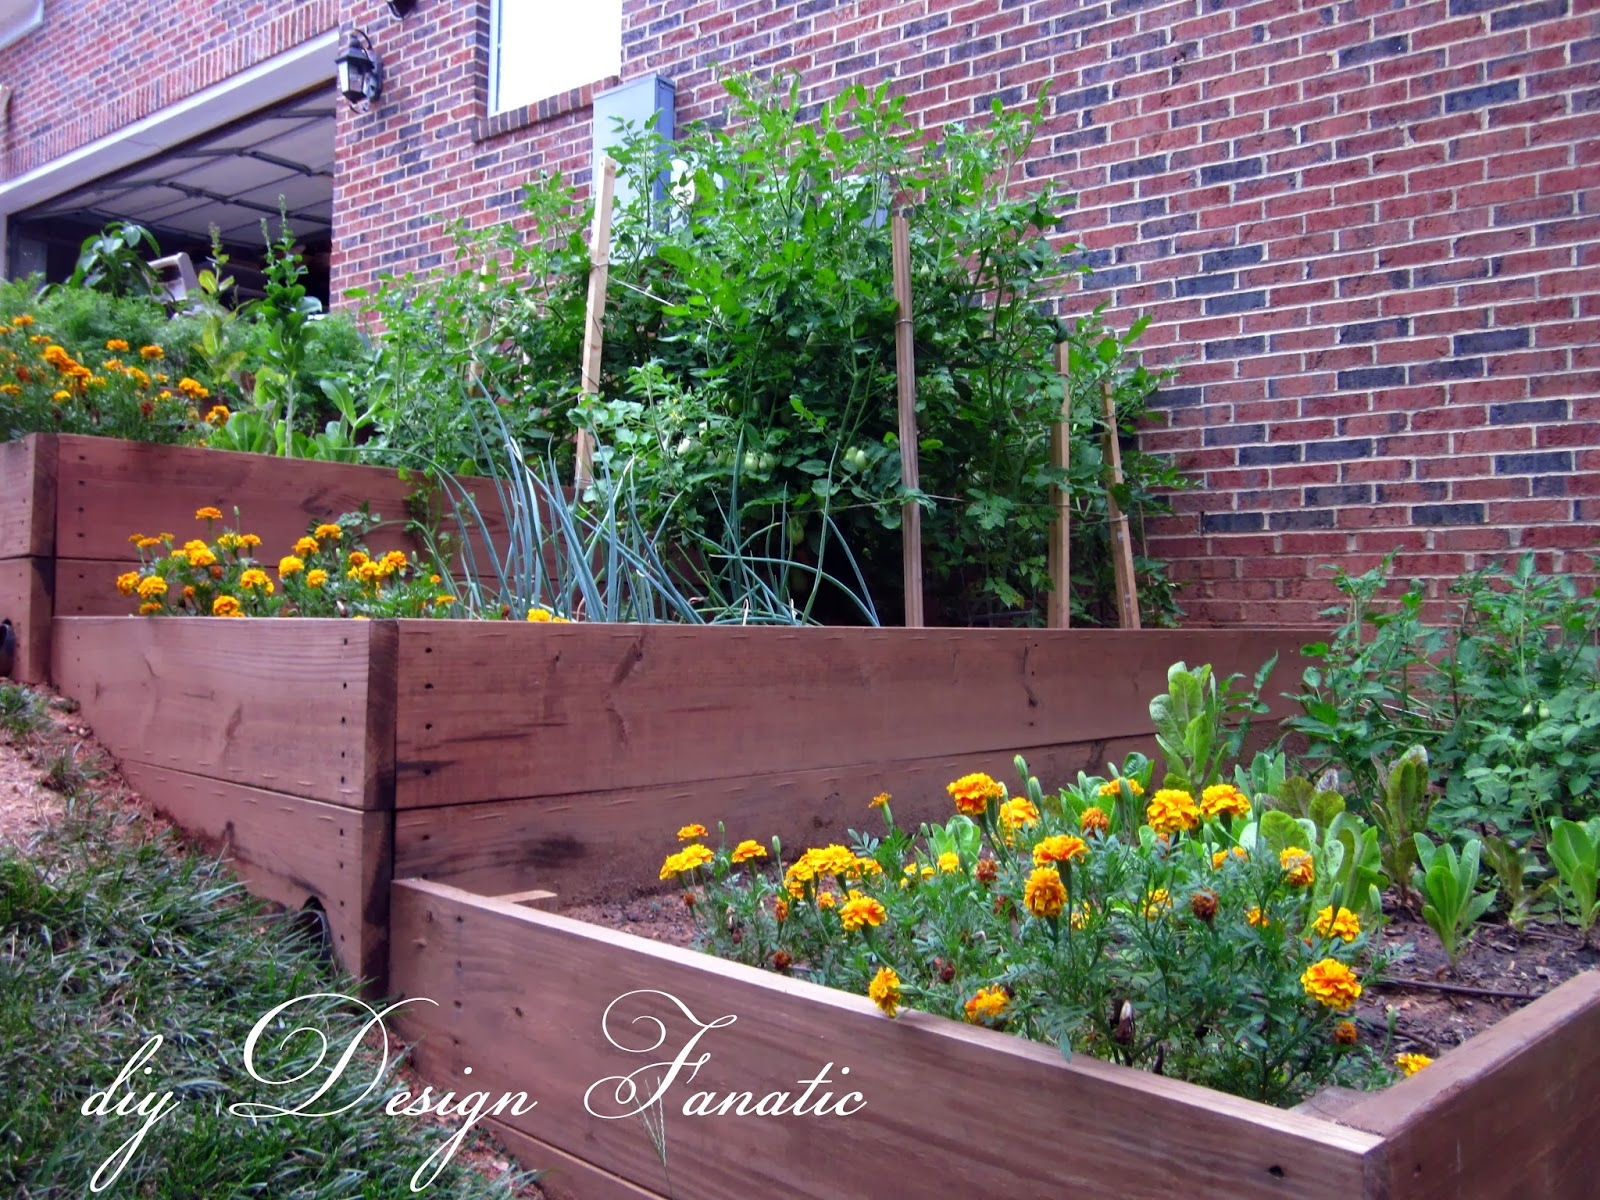 Diy design fanatic 12 ideas for landscaping on a slope for Garden design channel 4